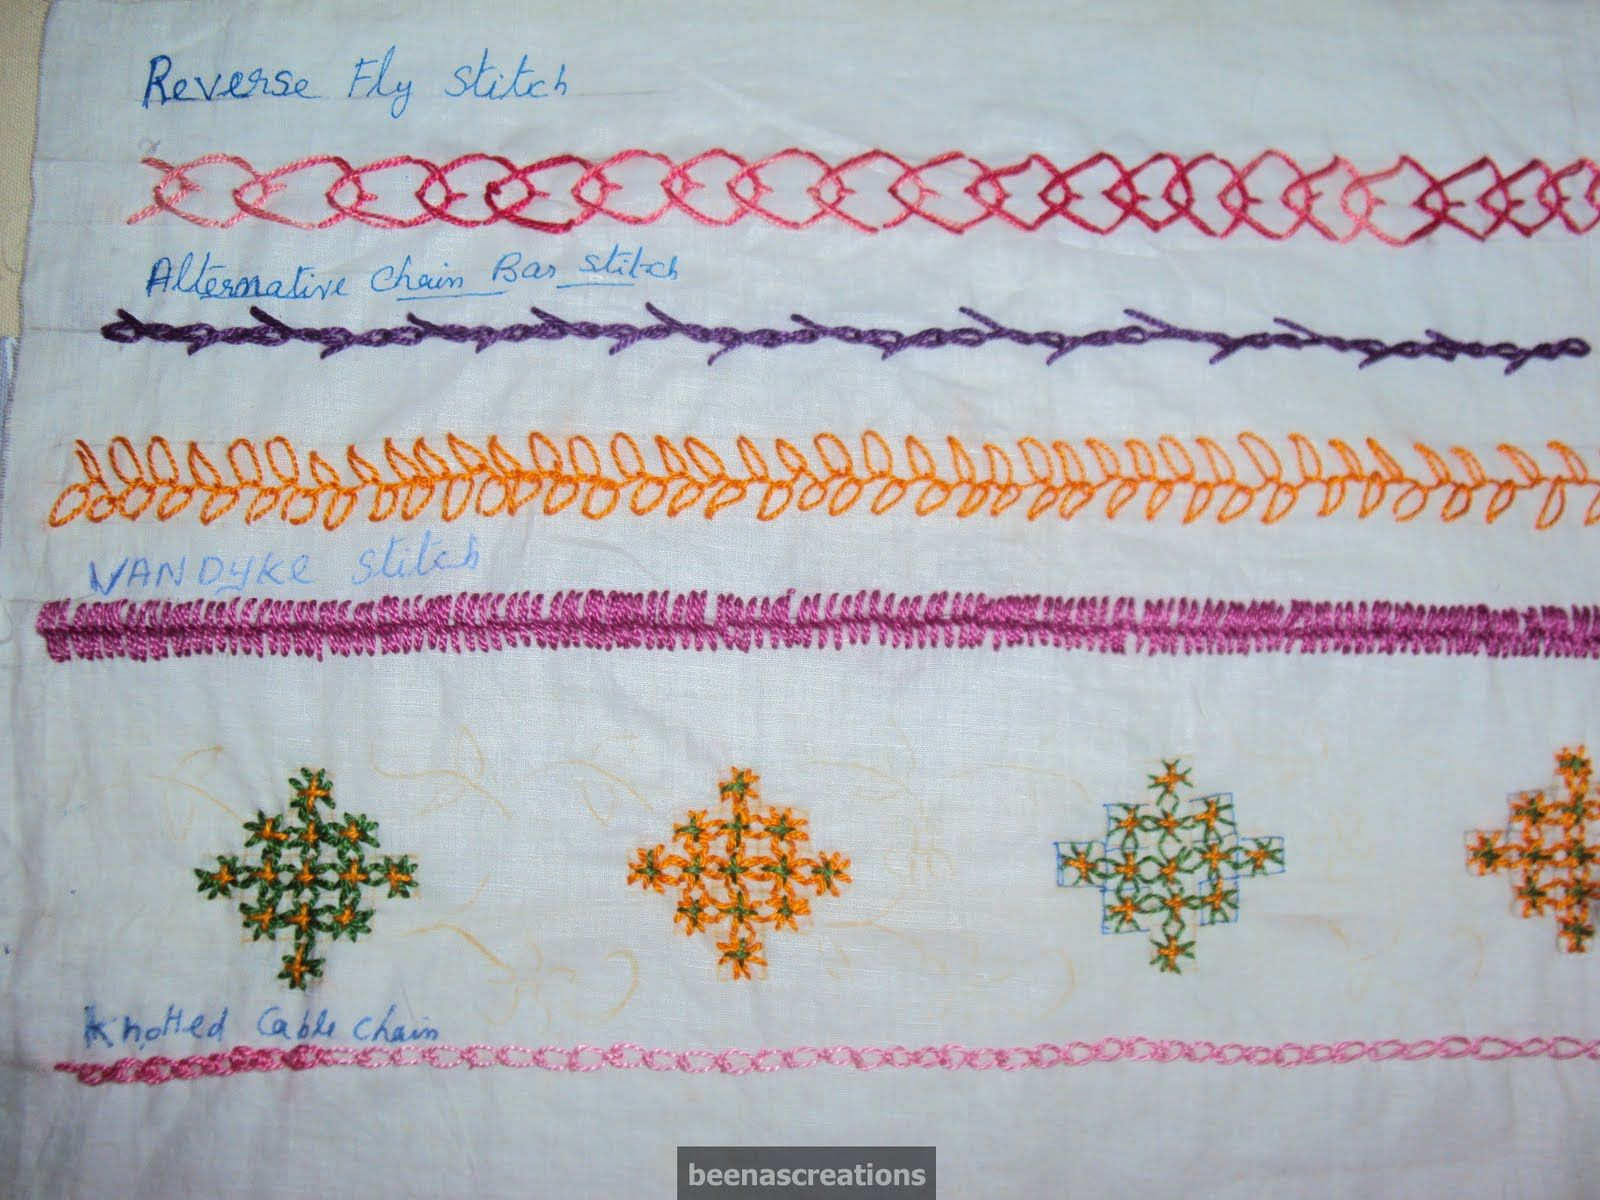 Types Of Embroidery Stitches Types Of Hand Embroidery Stitches